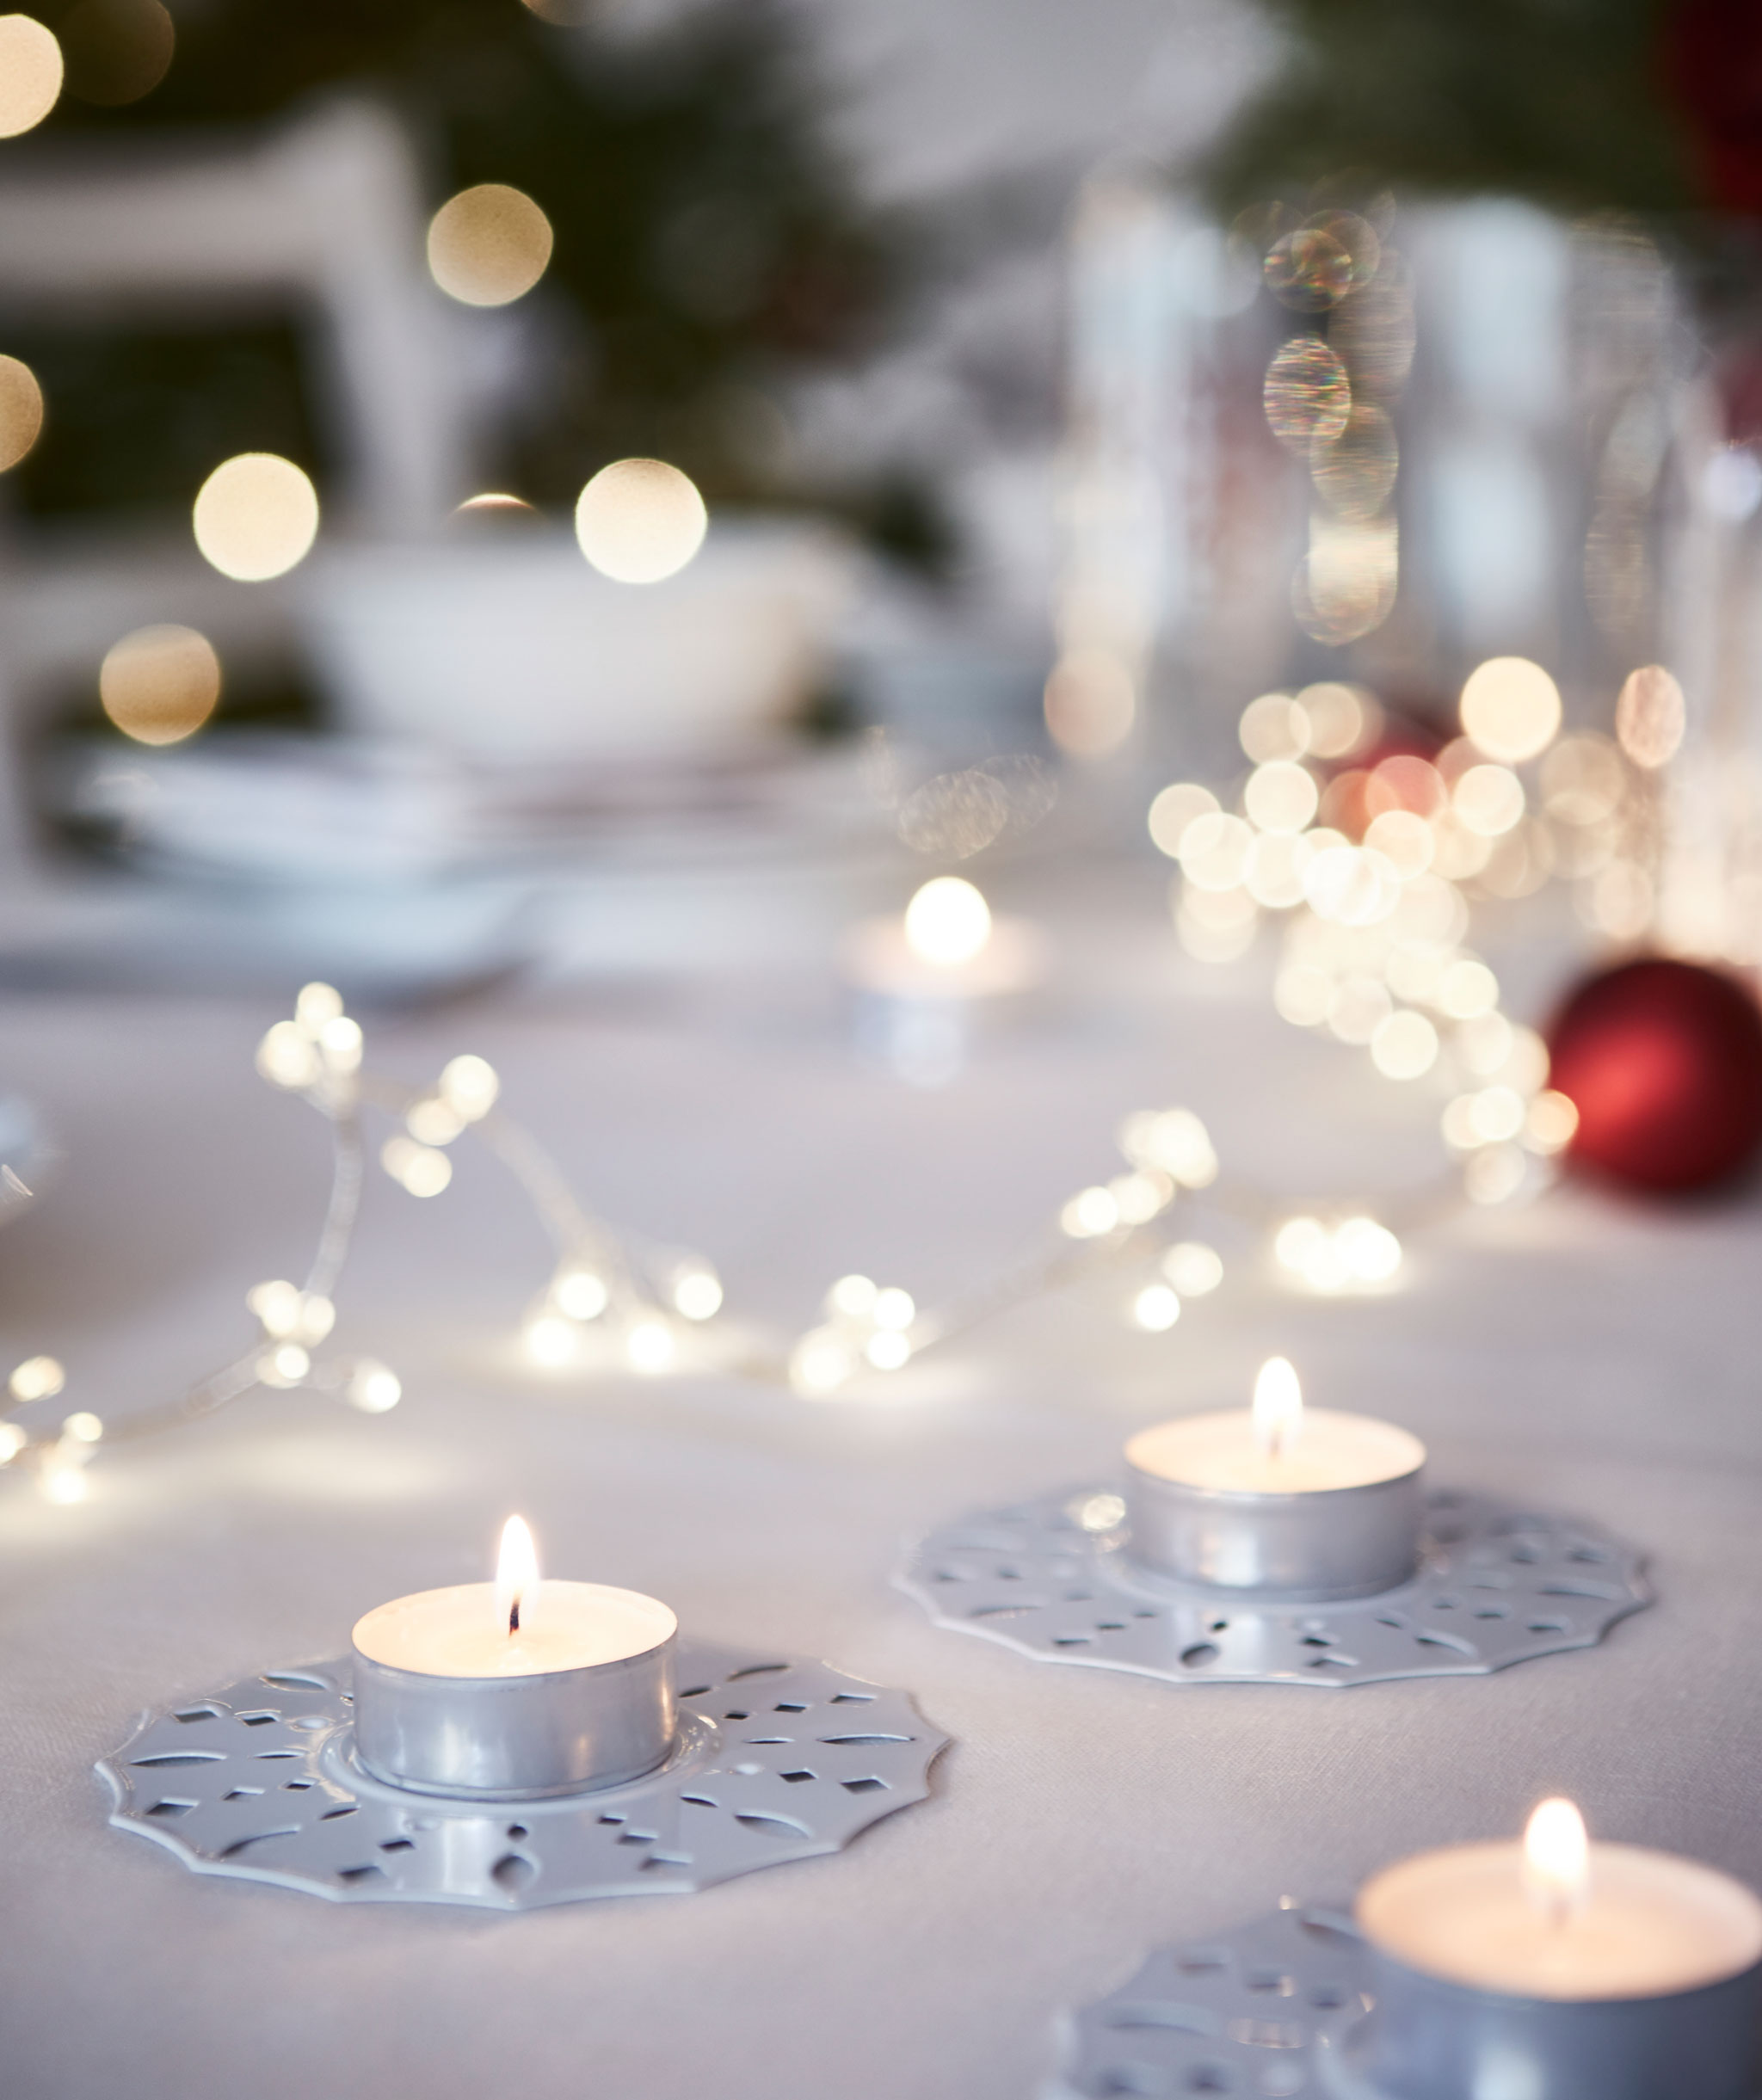 Tea lights in decorative holders placed on table; out-of-focus background of a big table set for Christmas dinner.